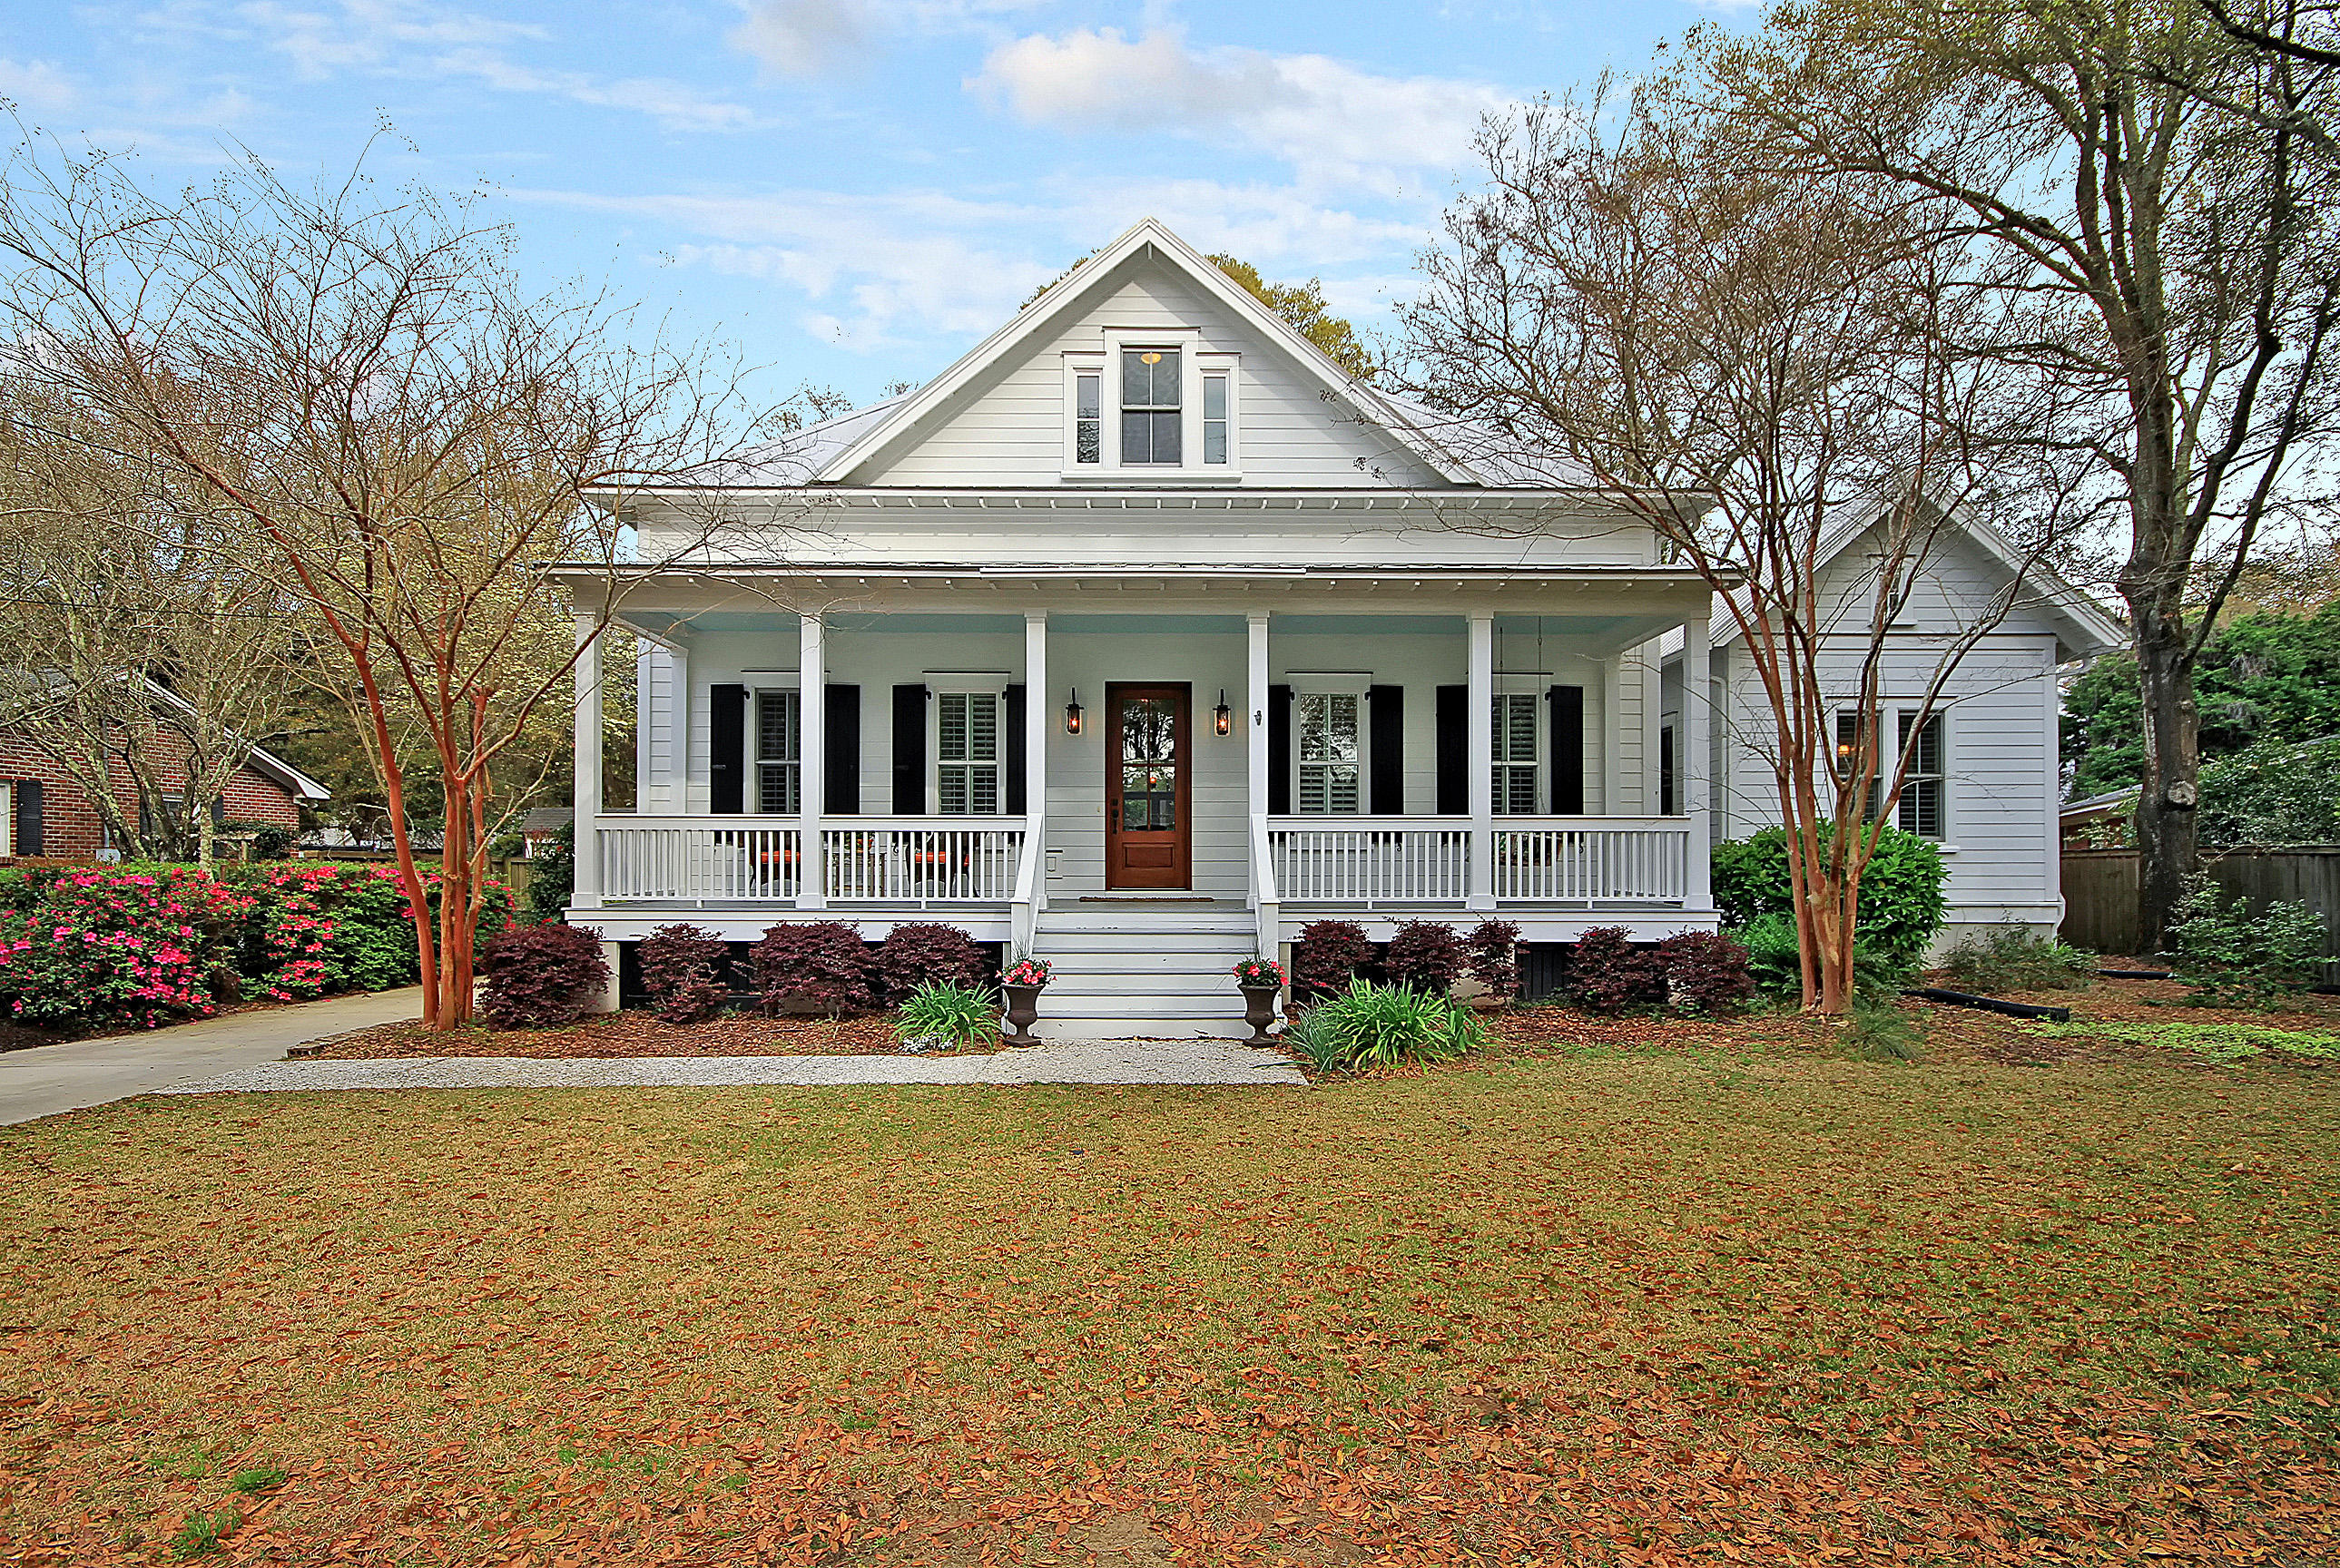 Old Mt Pleasant Homes For Sale - 718 Magnolia, Mount Pleasant, SC - 25